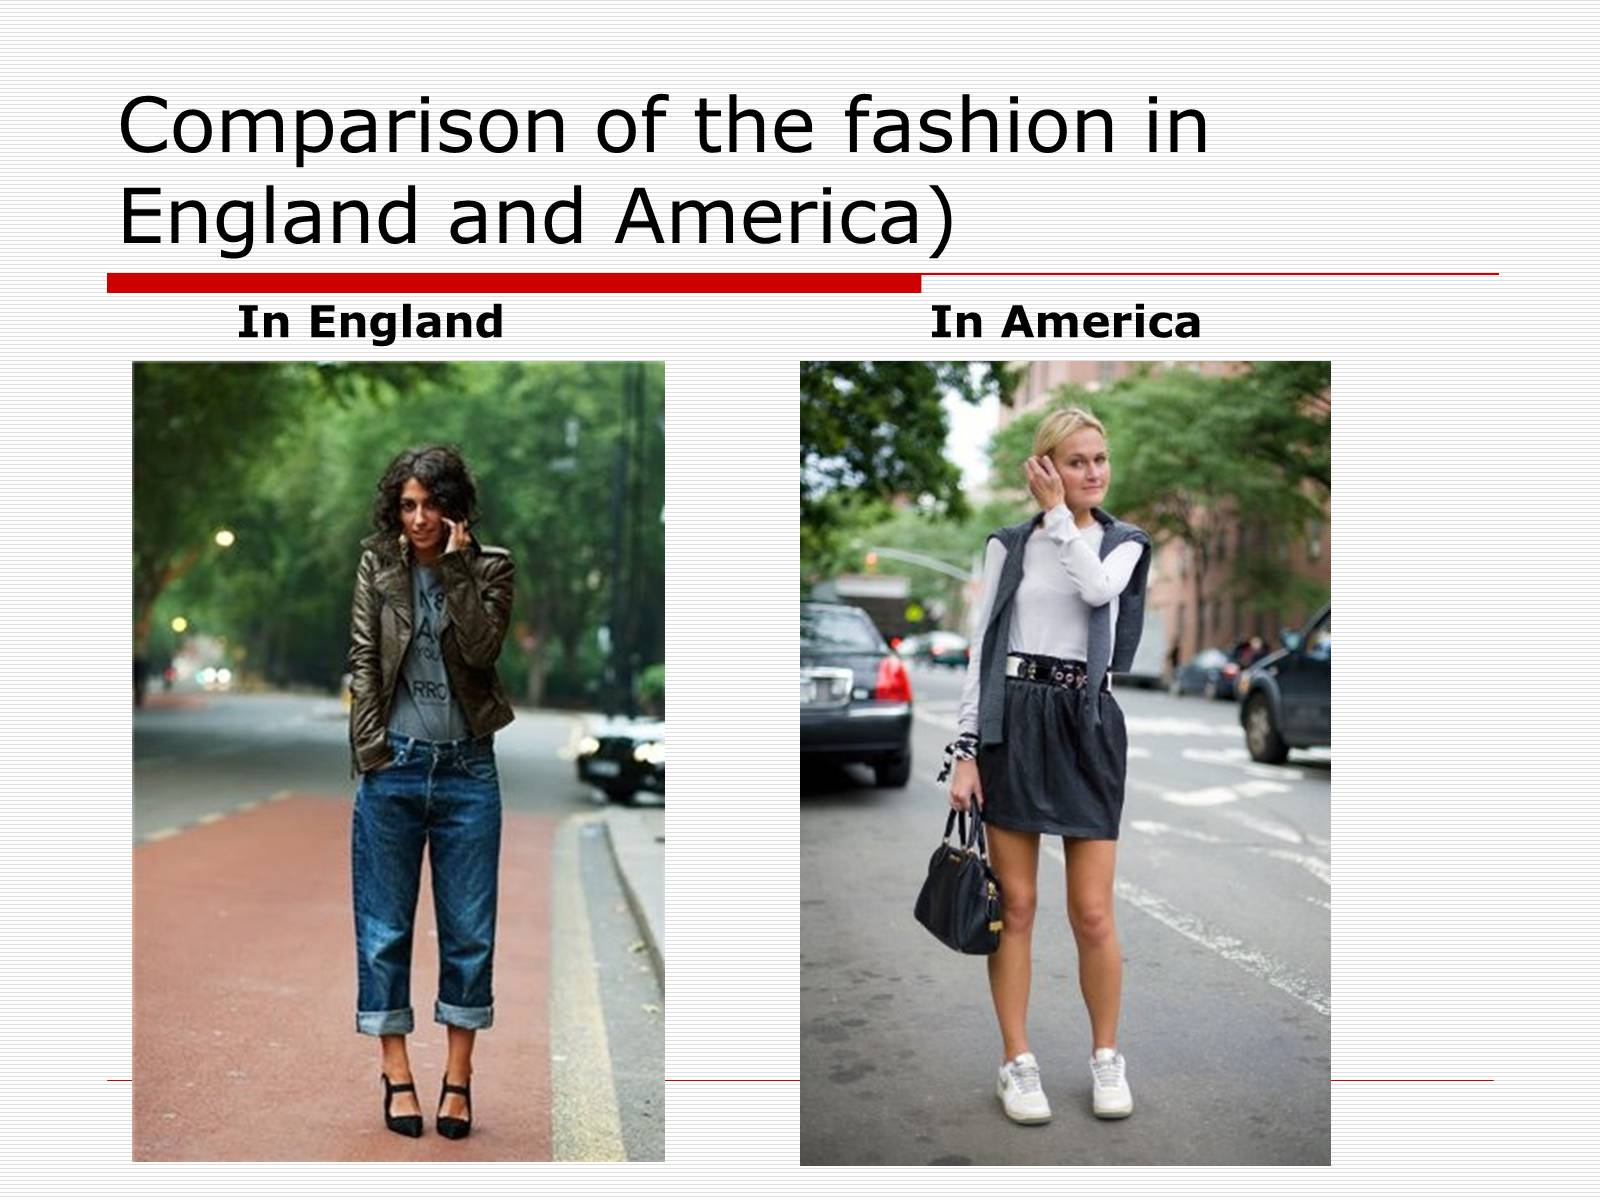 Презентація на тему «Comparison of the fashion in England and America» - Слайд #19